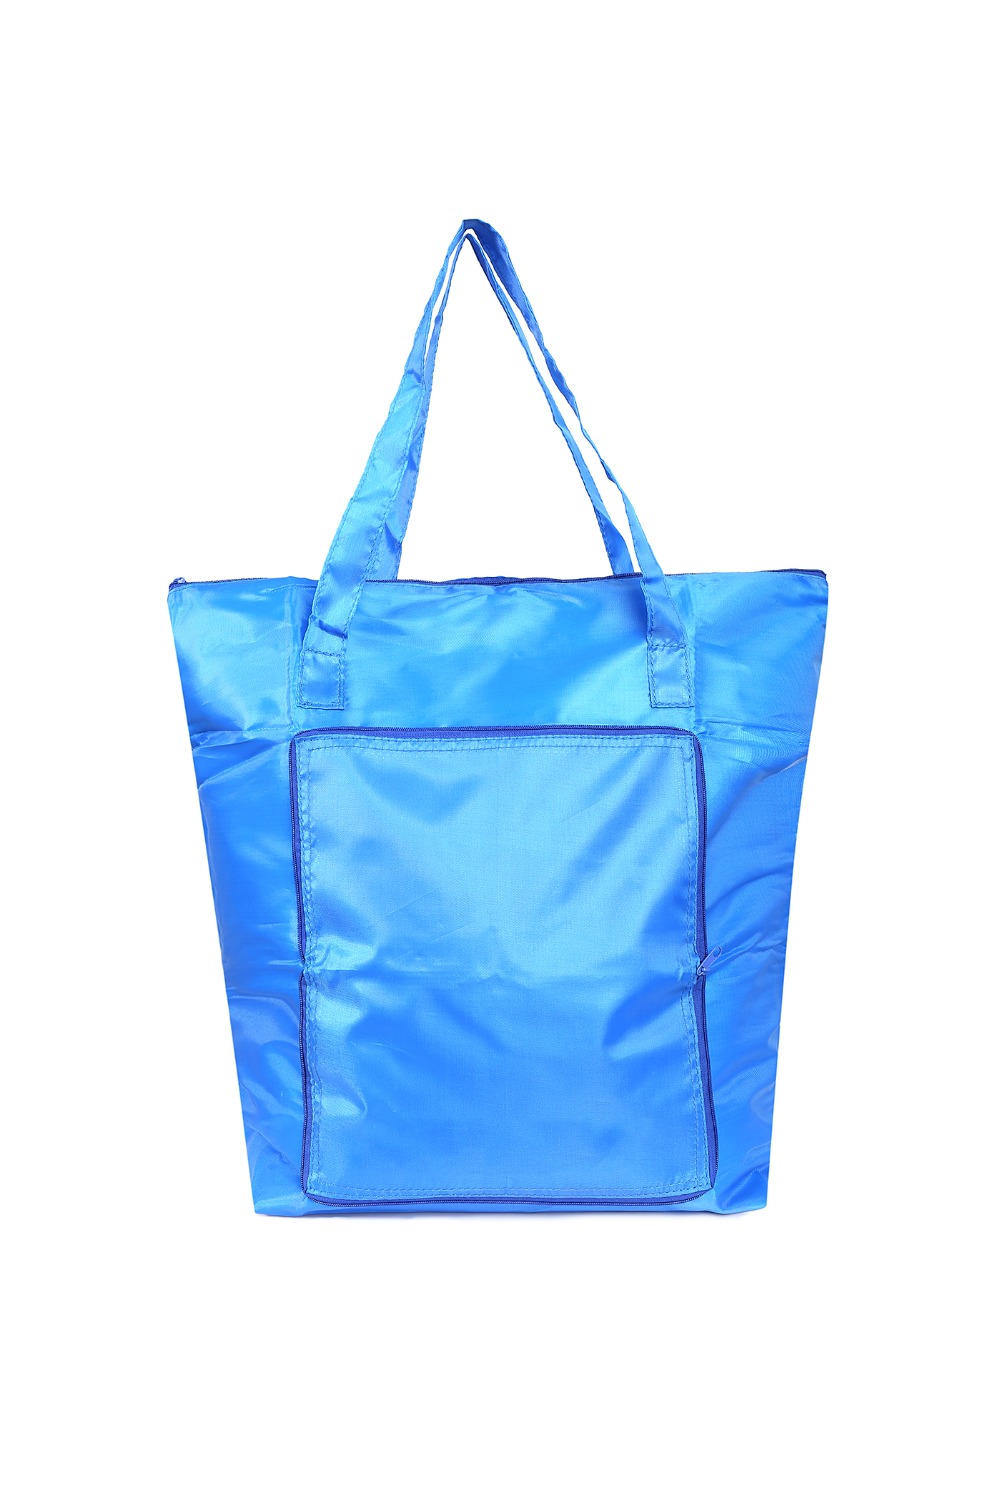 refrigerated Foldable lunch Cooler bag